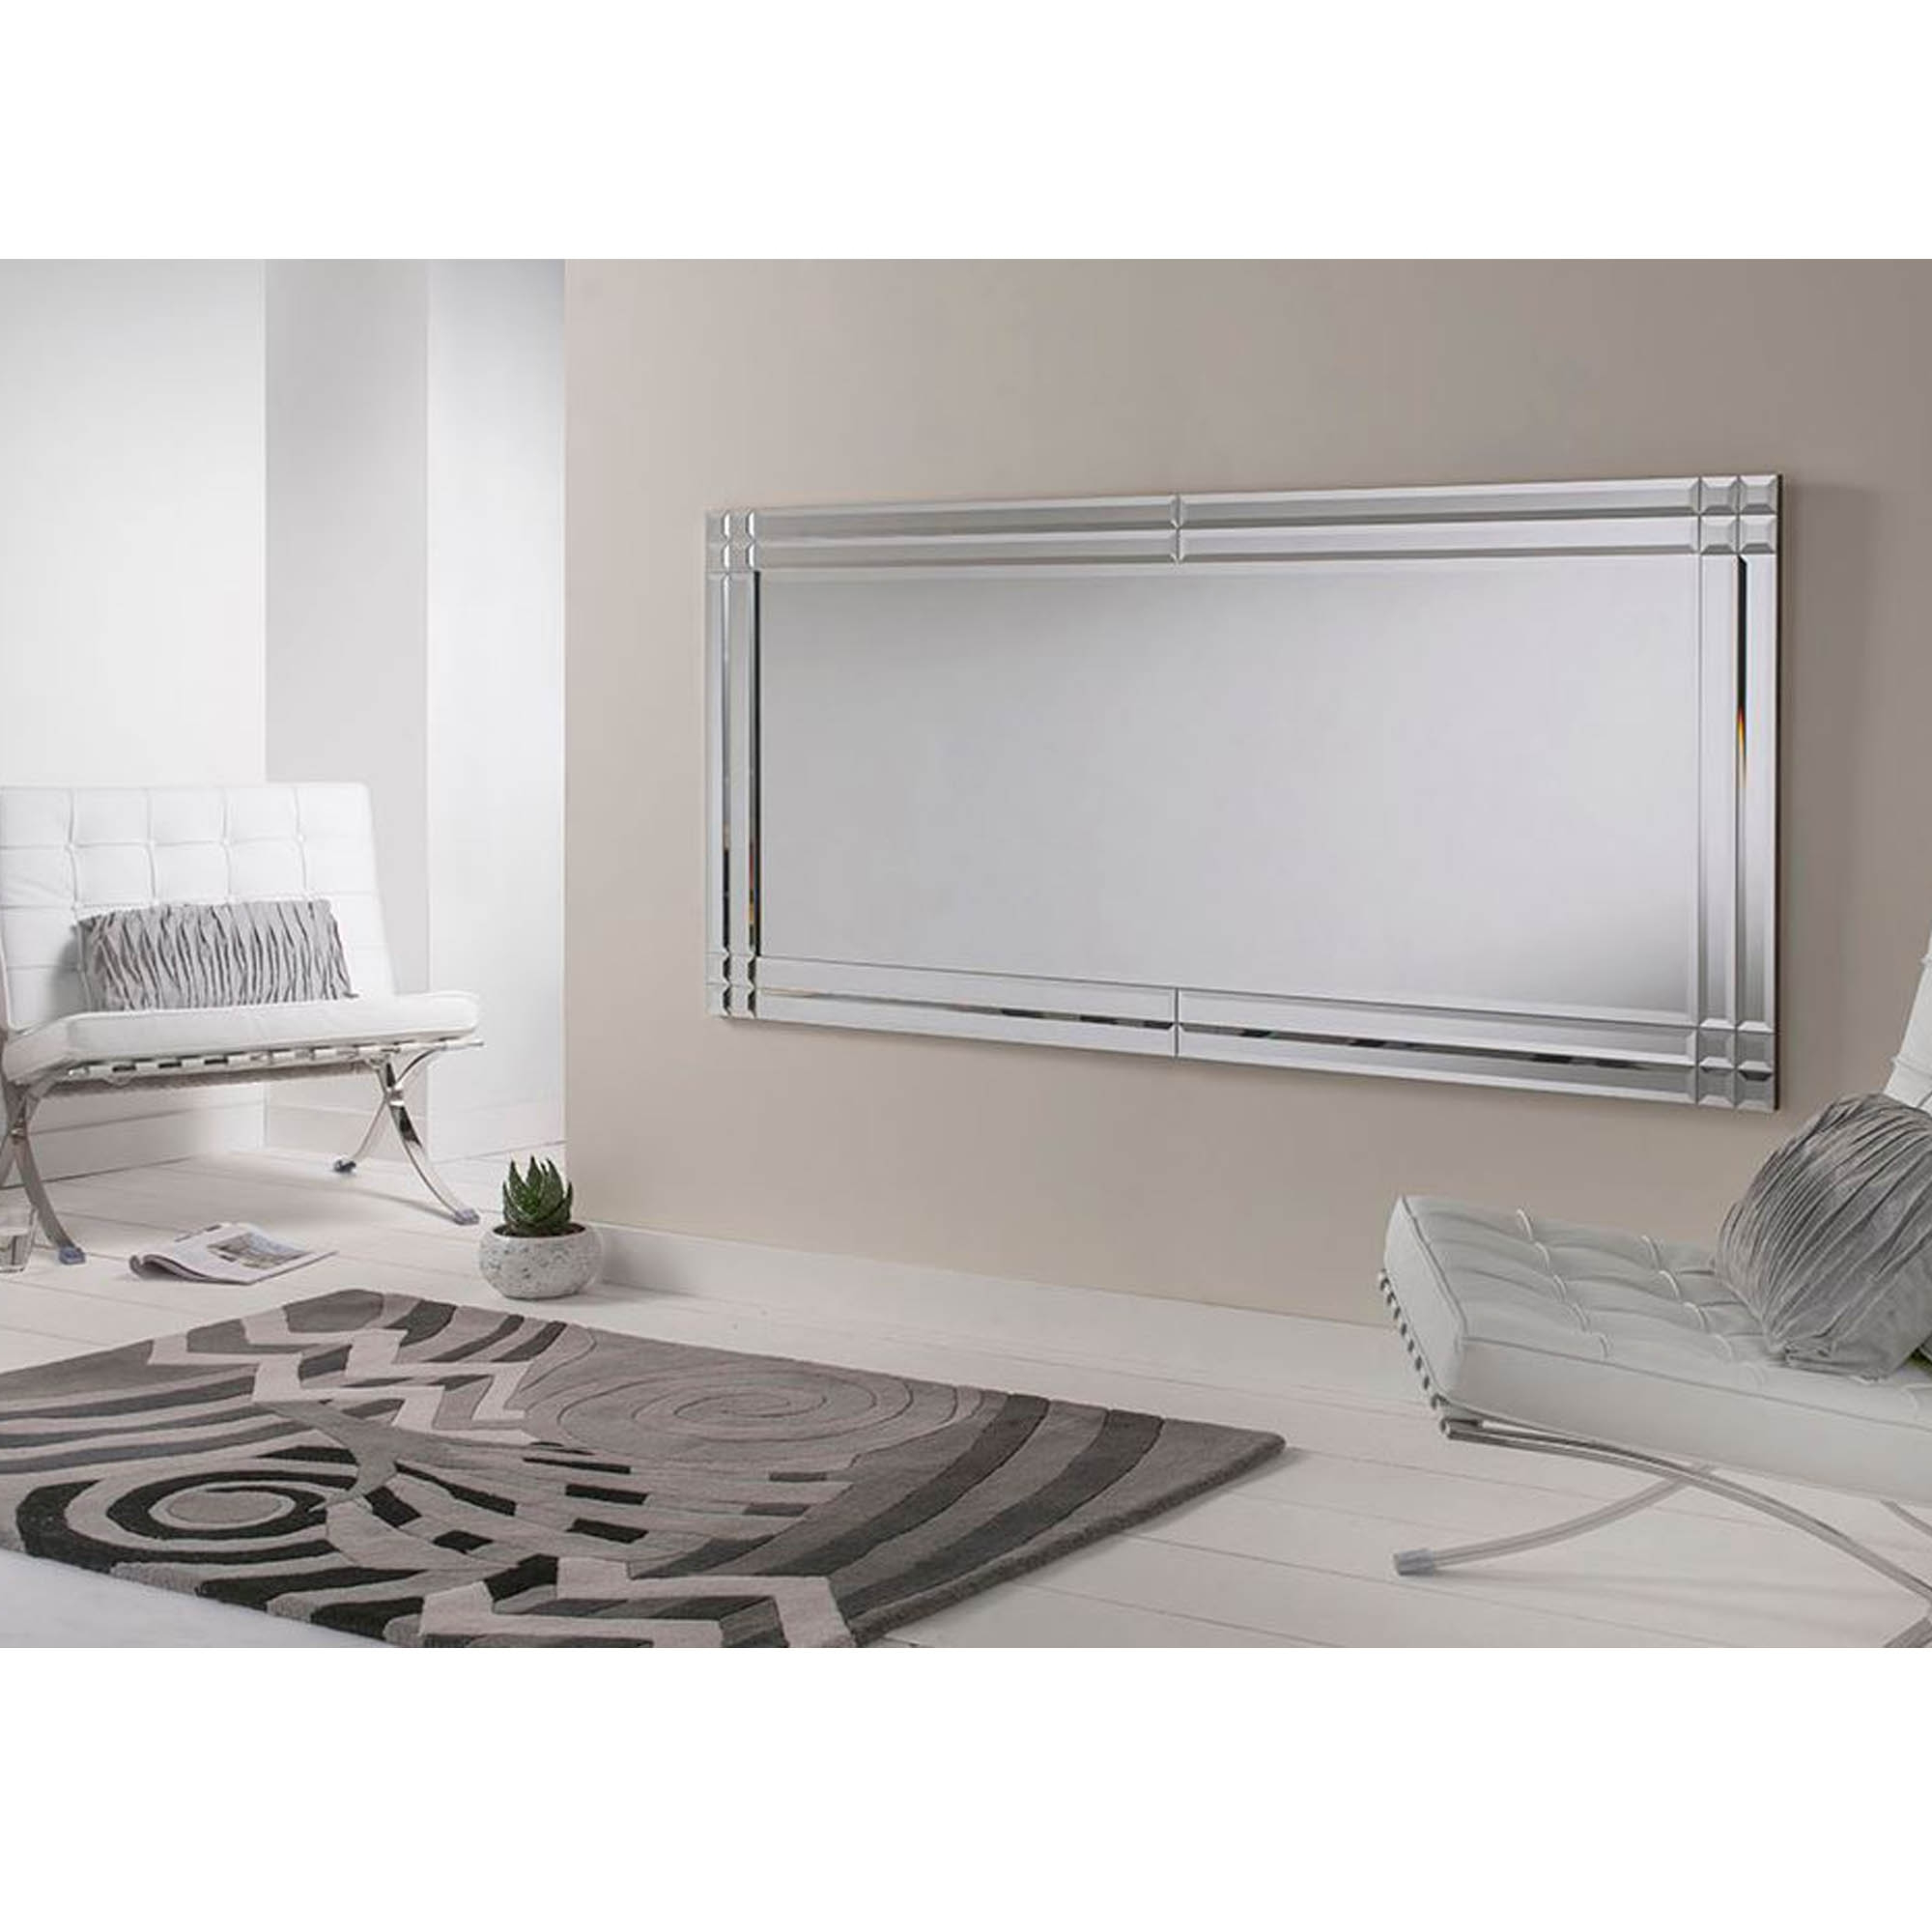 Large Bevelled Rectangular Wall Mirror Throughout 2019 Oblong Wall Mirrors (Gallery 18 of 20)